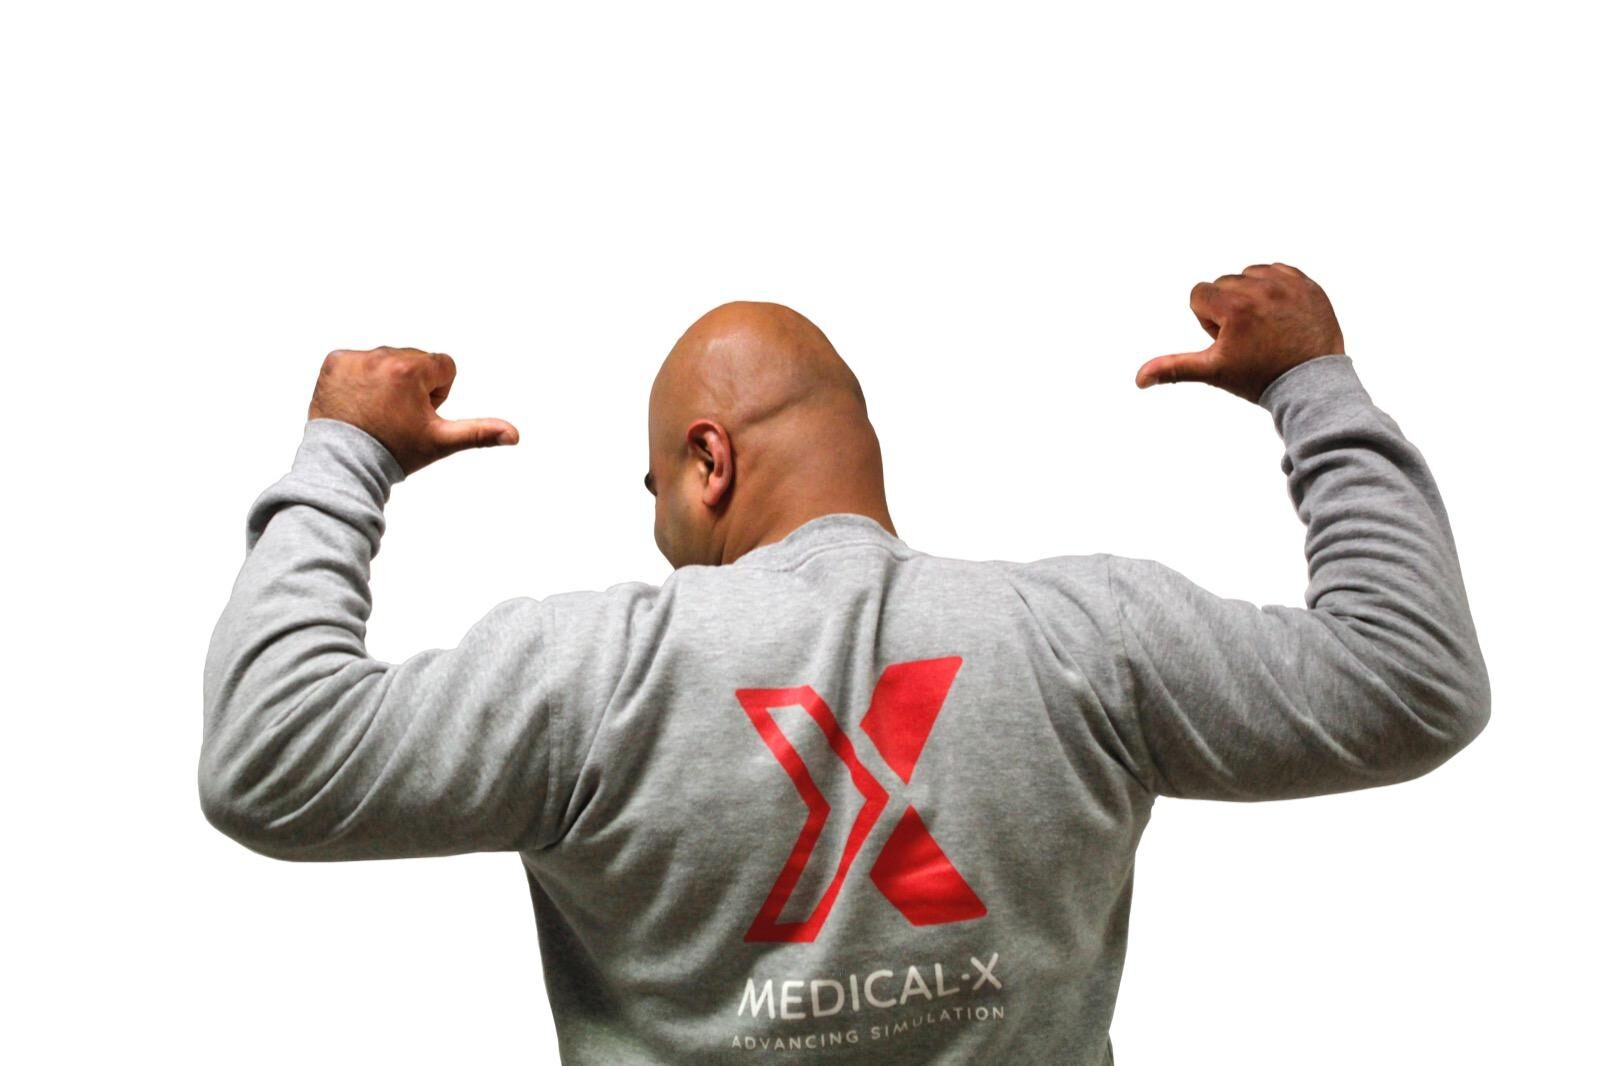 Proud to be part of Medical-x